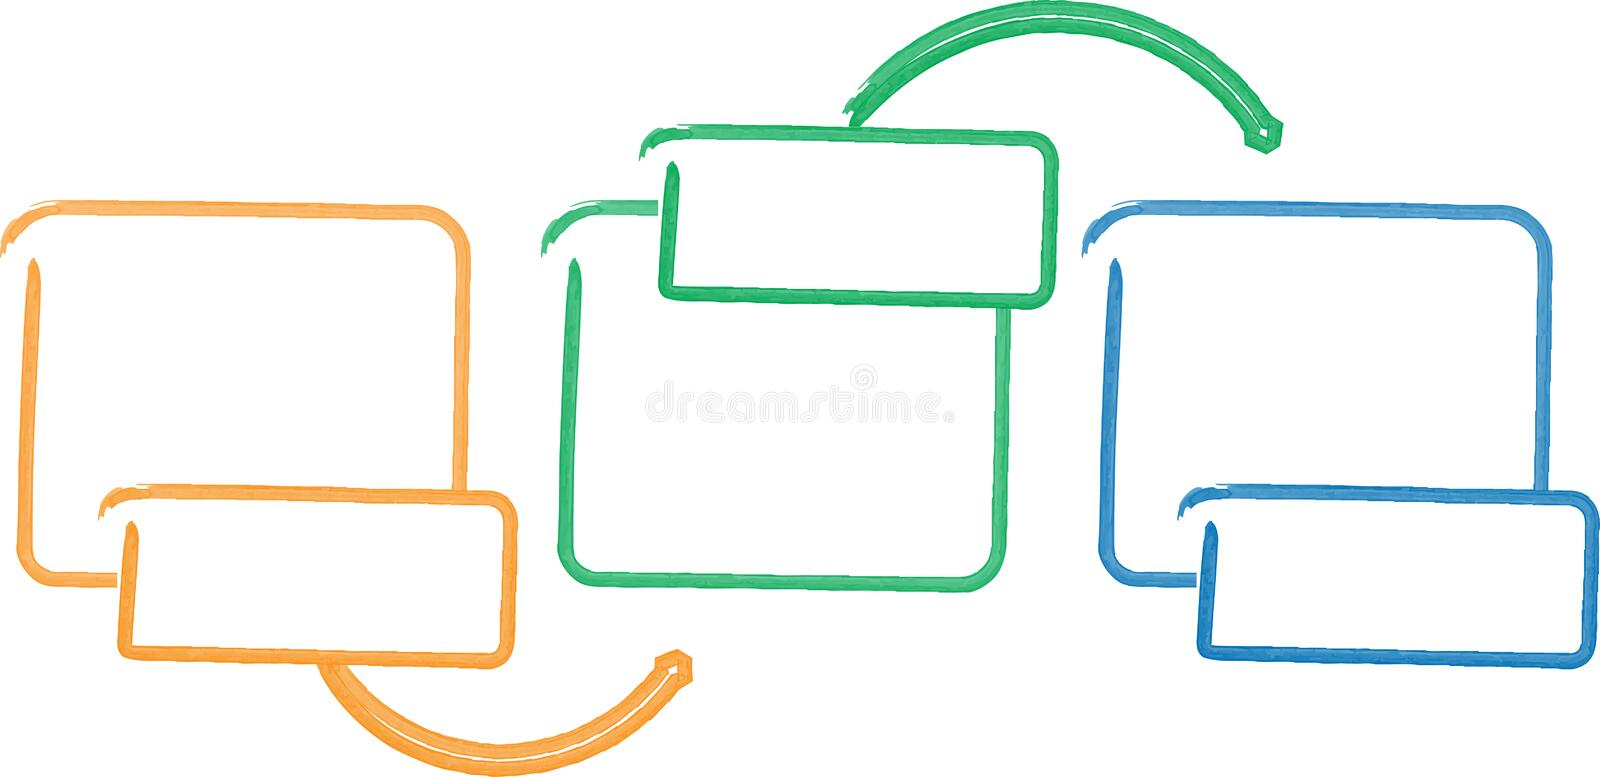 Download Process Relationship Business Diagram Stock Illustration - Image: 19089837